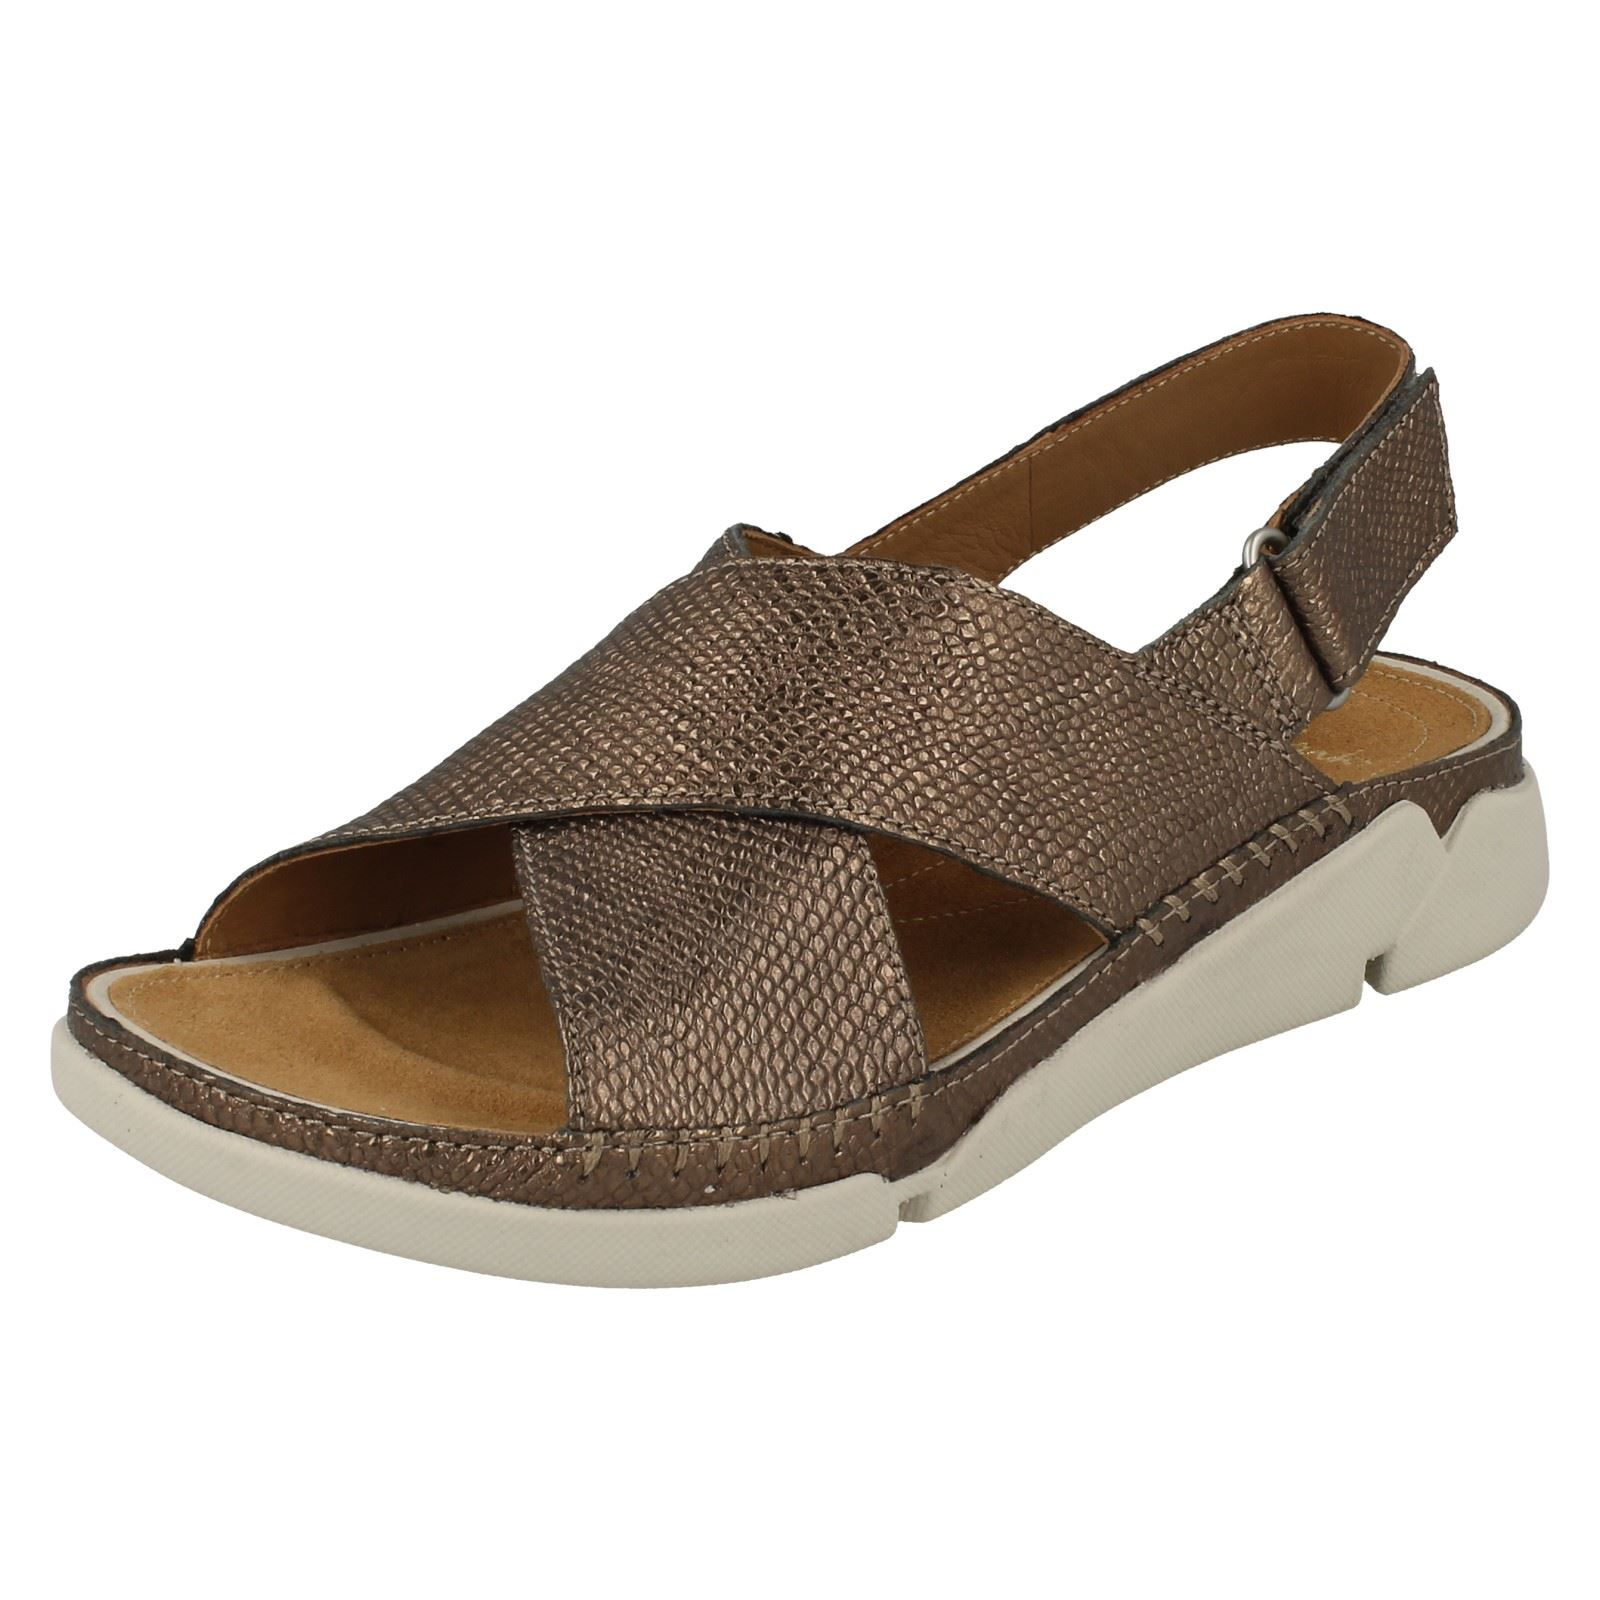 Clarks Summer Shoes And Sandals